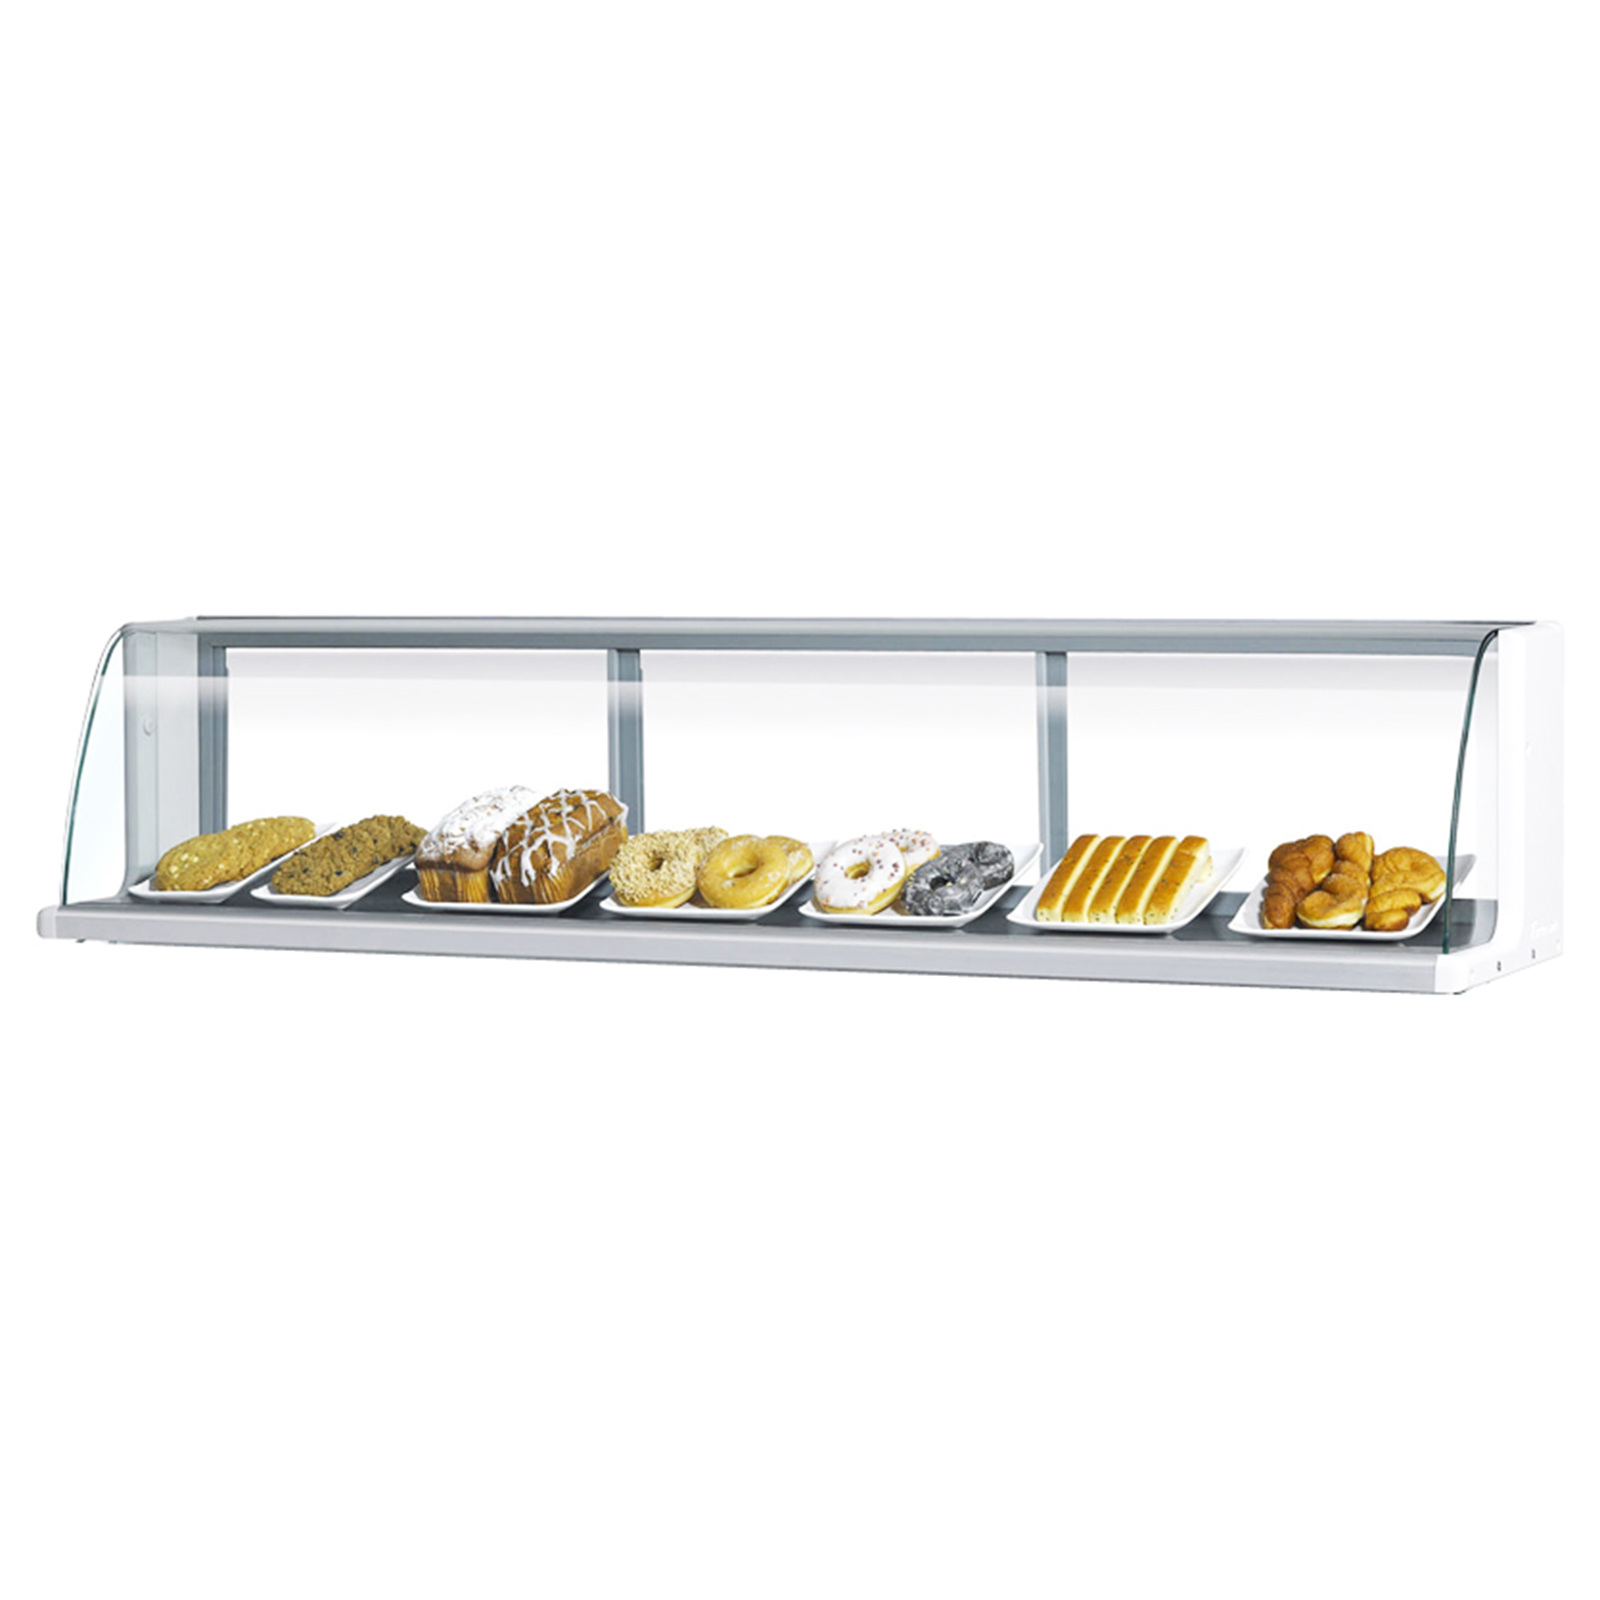 Turbo Air TOMD-40LB display case, non-refrigerated countertop